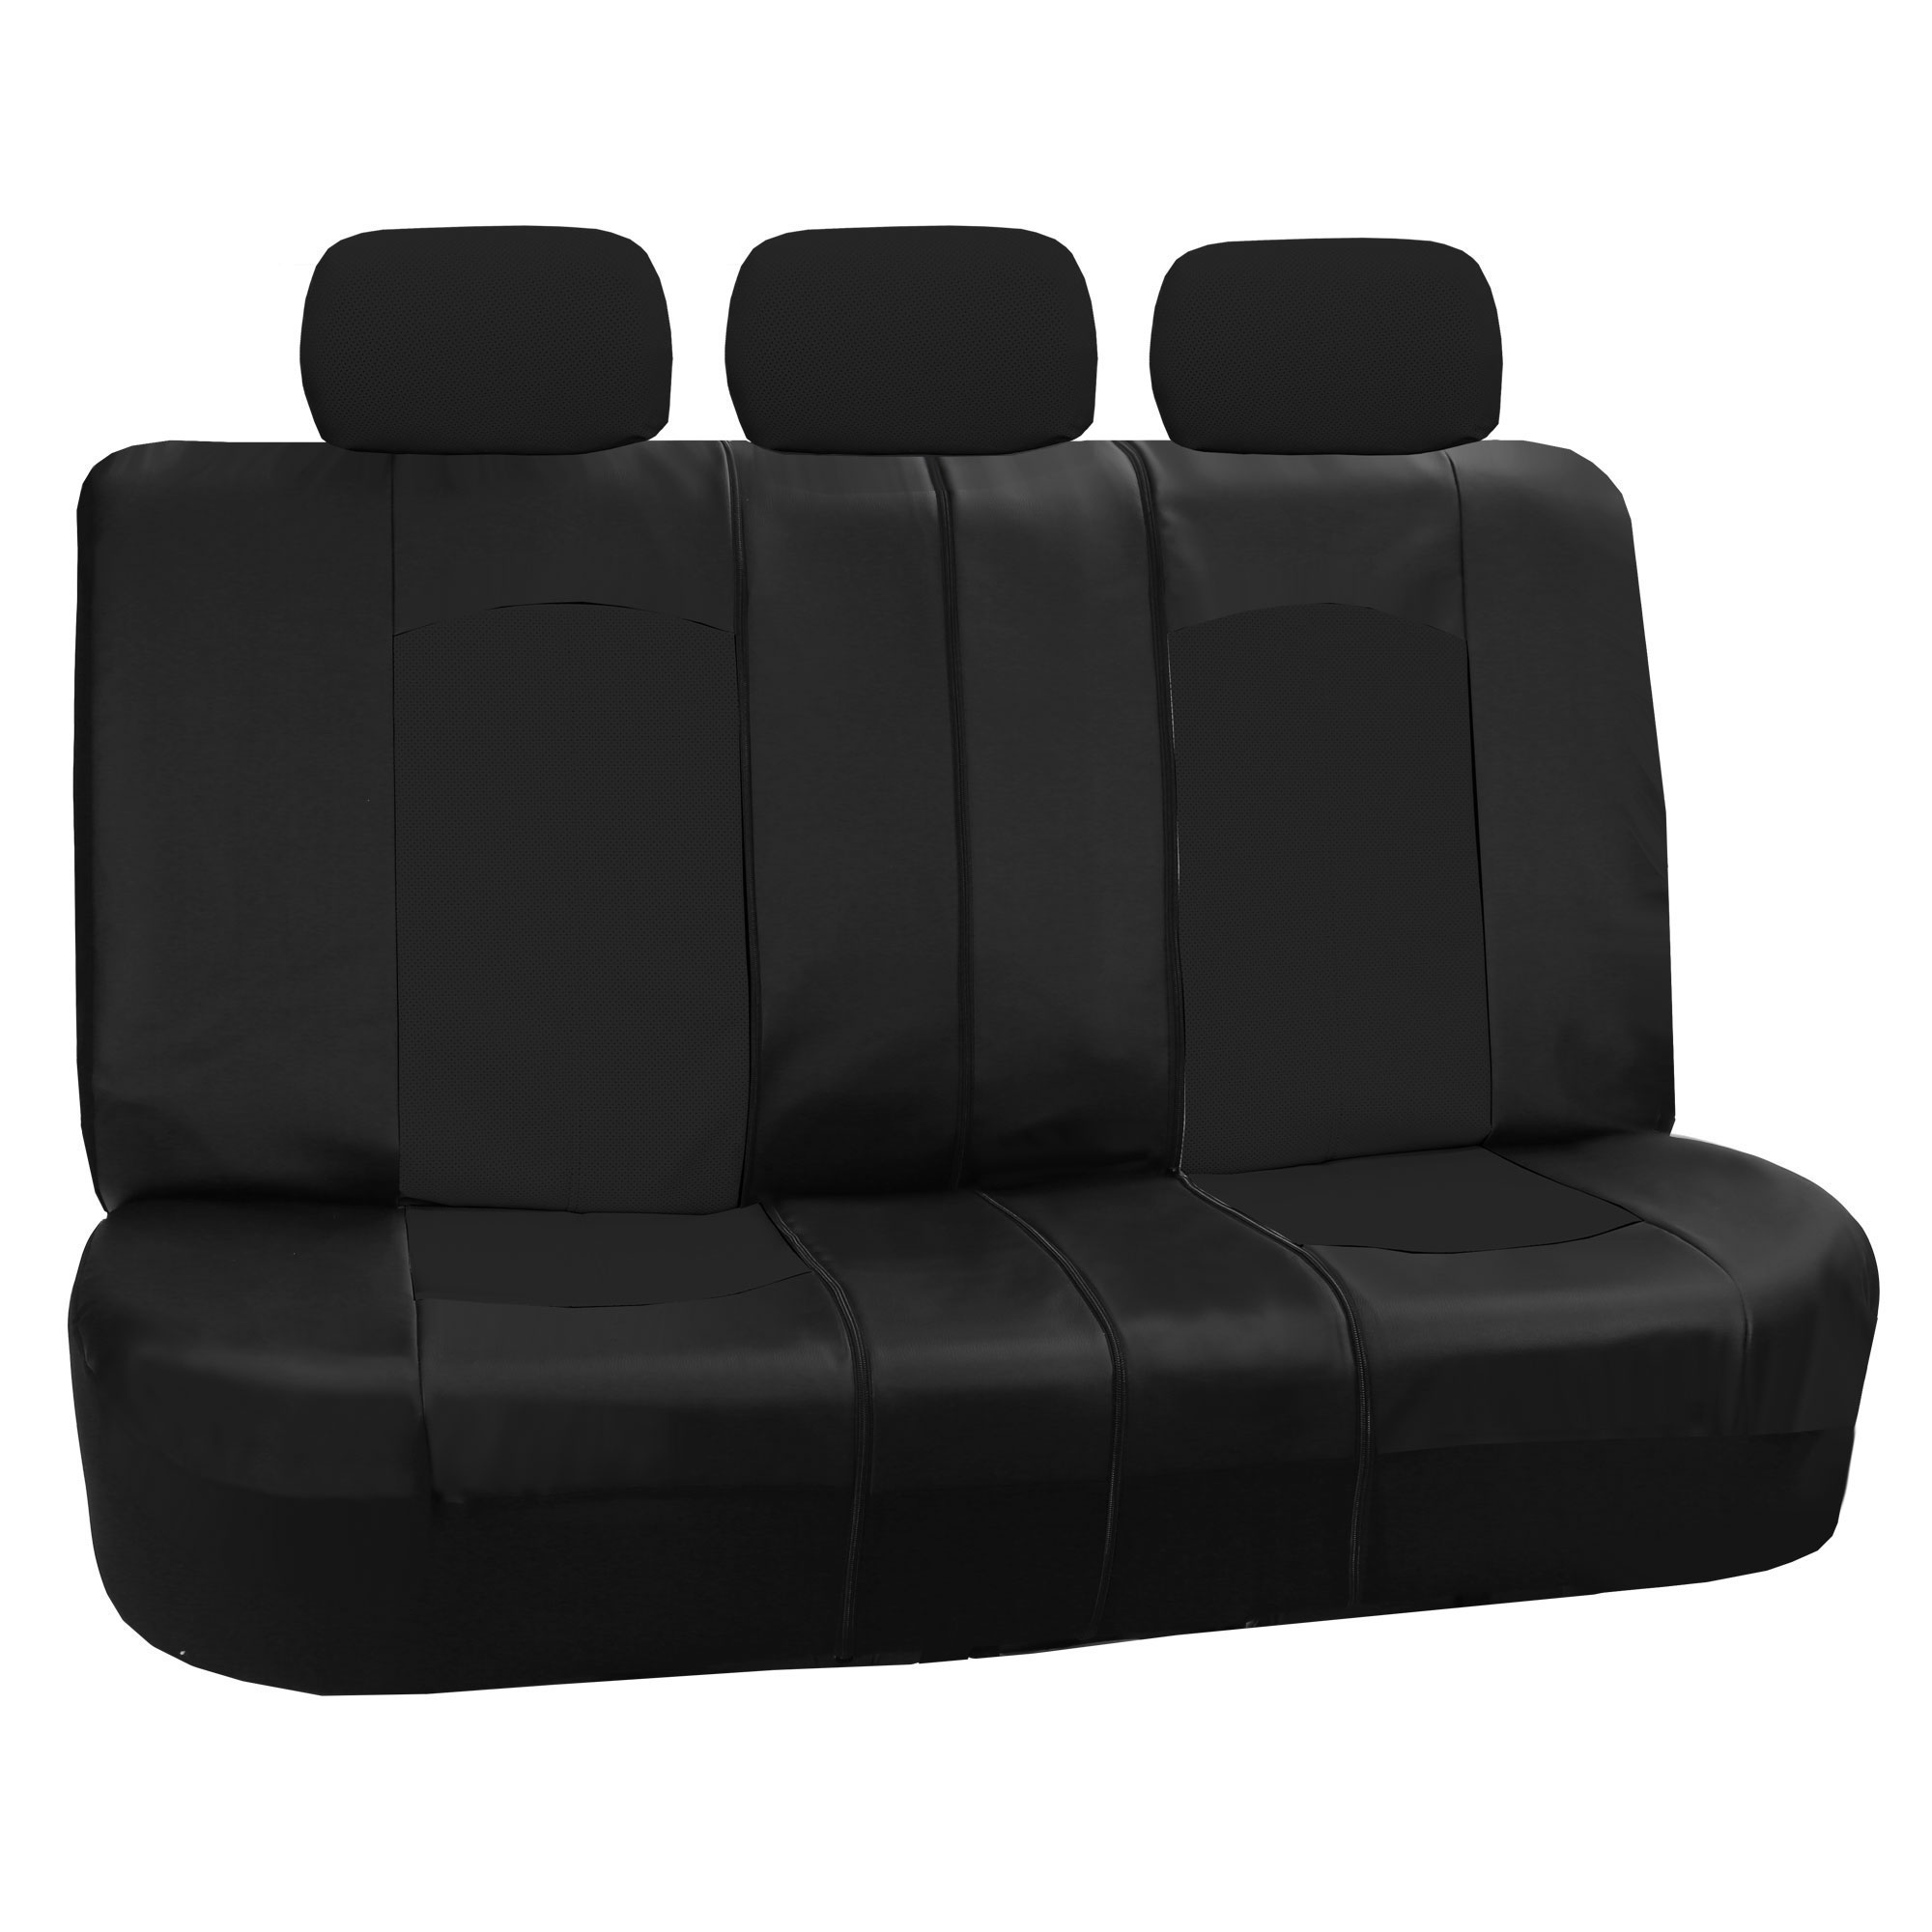 Marvelous photograph of   Perforated Leather Car Seat Covers Airbag Safe amp Split Bench Ready with #666666 color and 2000x2000 pixels